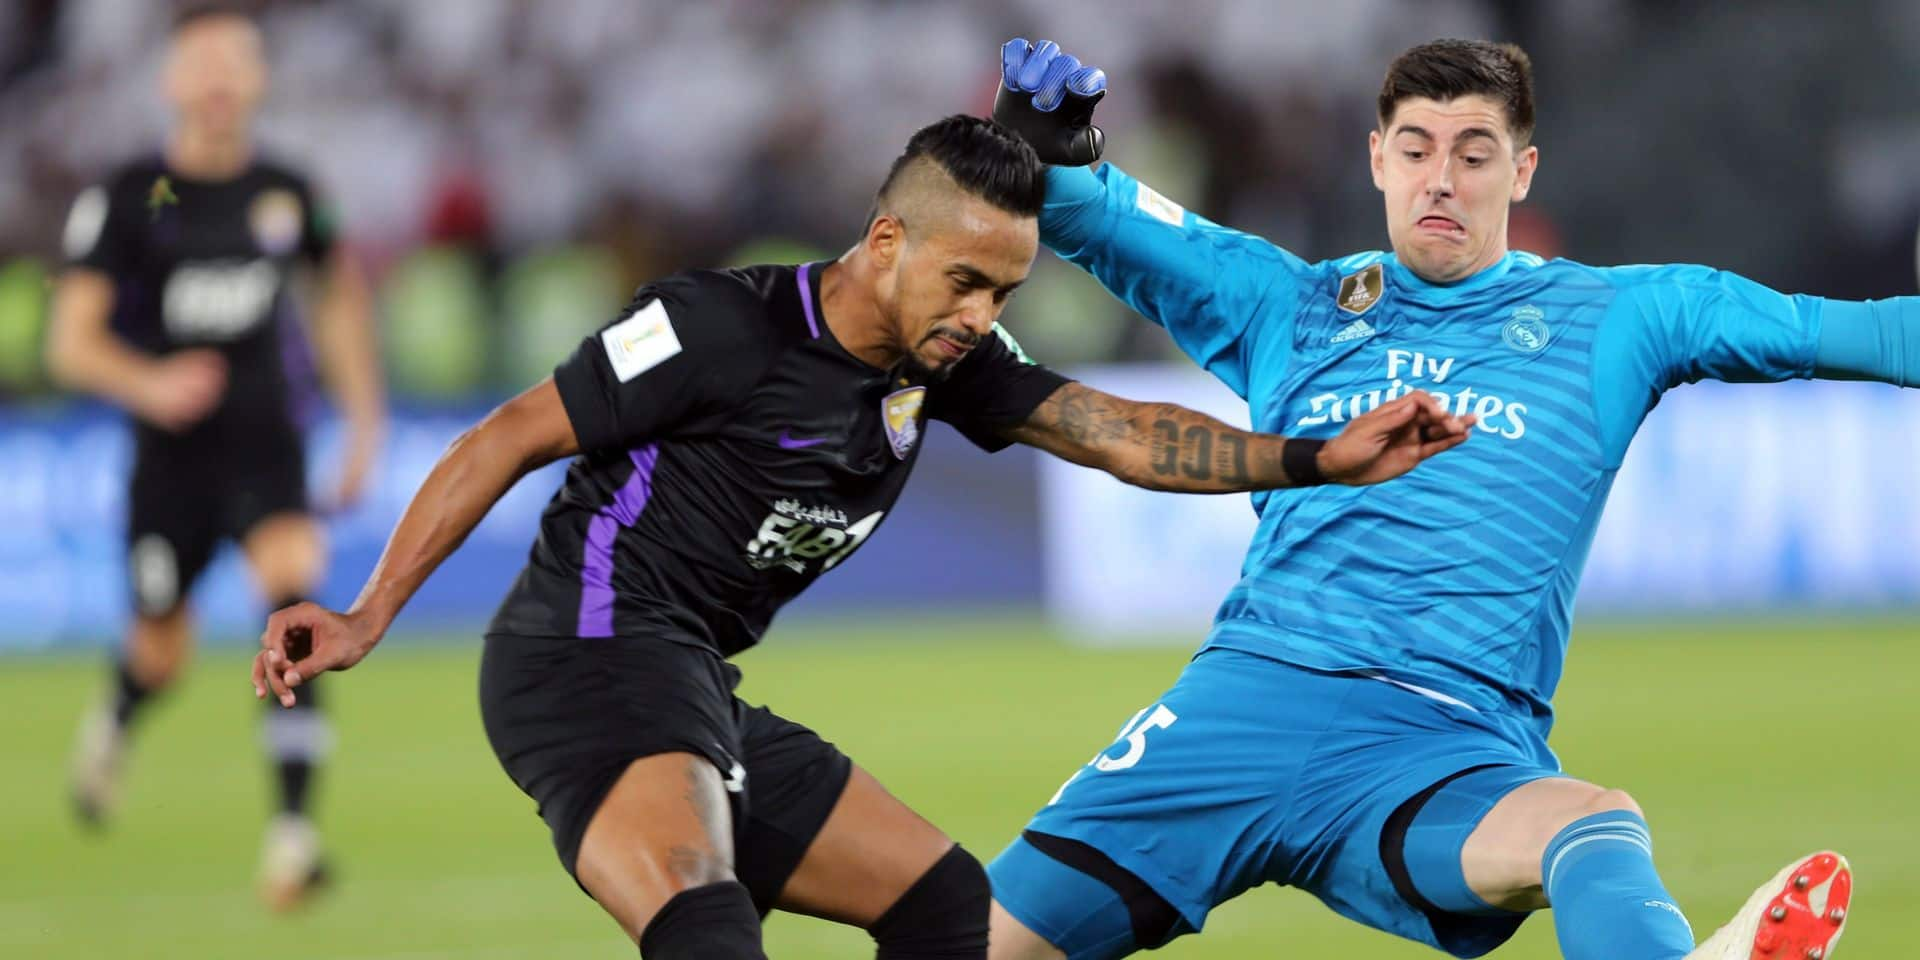 Emirates's Al Ain Caio challenges Real Madrid's goalkeeper Thibaut Courtois, right, during the Club World Cup final soccer match between Real Madrid and Al Ain at Zayed Sport City in Abu Dhabi, United Arab Emirates, Saturday, Dec. 22, 2018. (AP Photo/Kamran Jebreili)